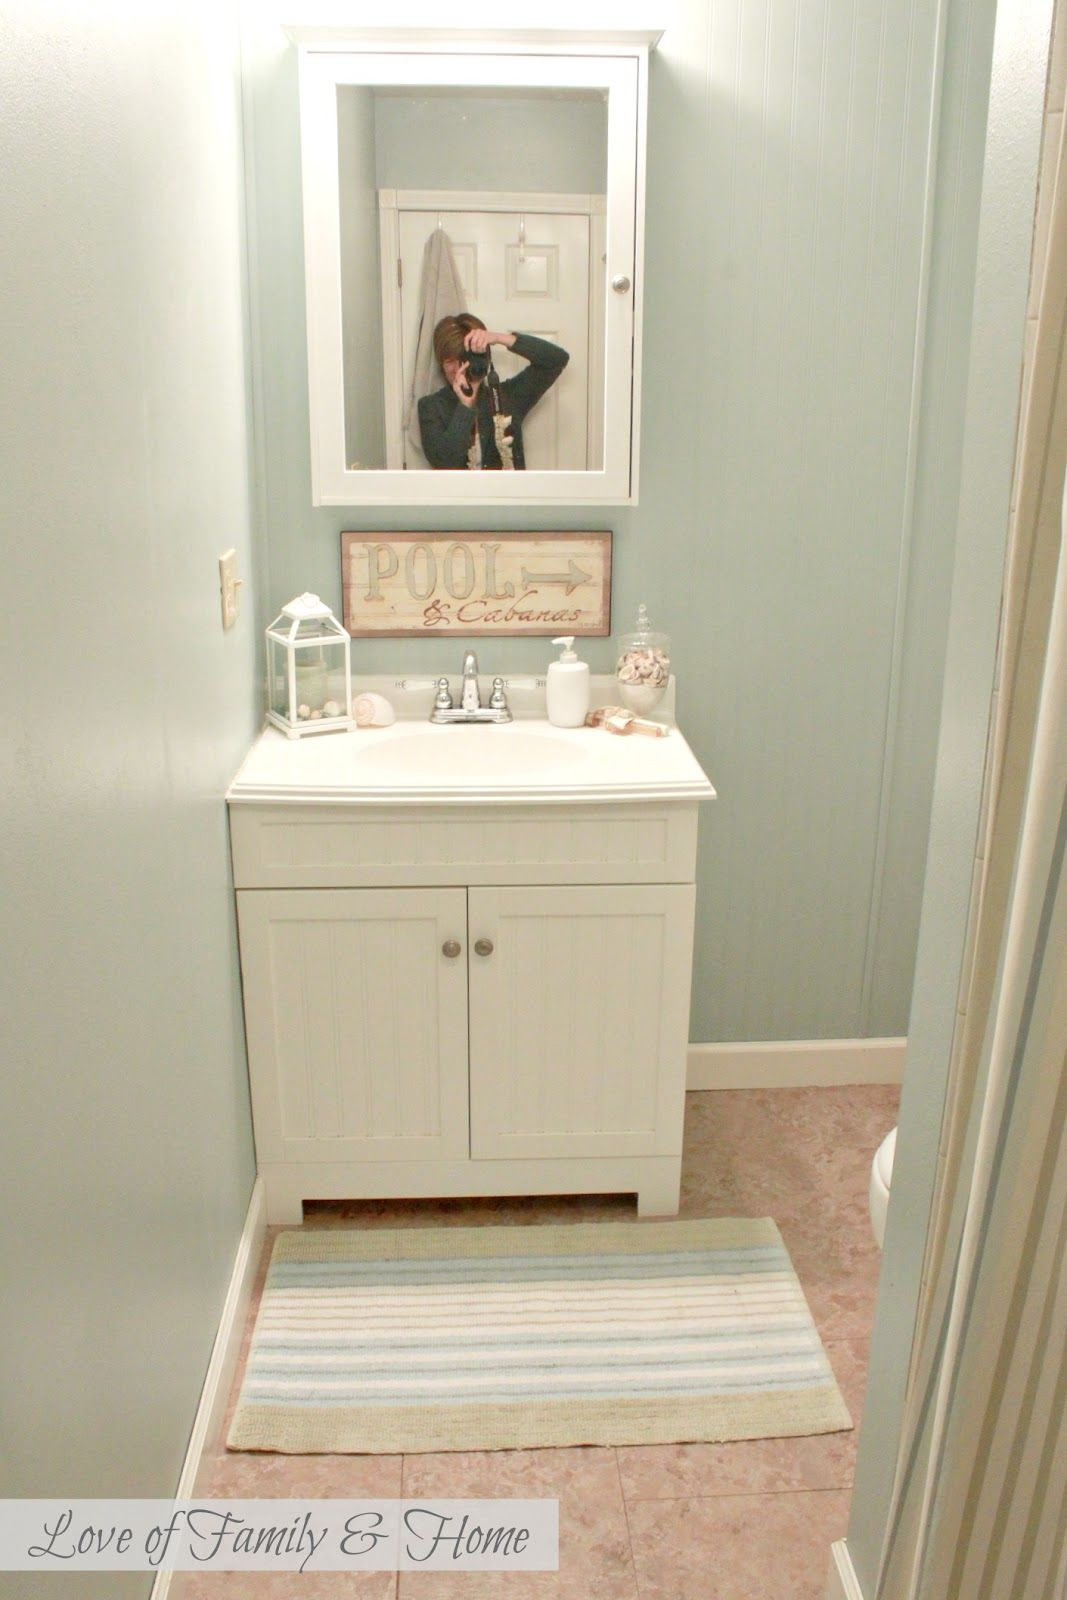 Small Bathroom No Window Google Search Small Bathroom Paint Small Bathroom Colors Small Bathroom Paint Colors